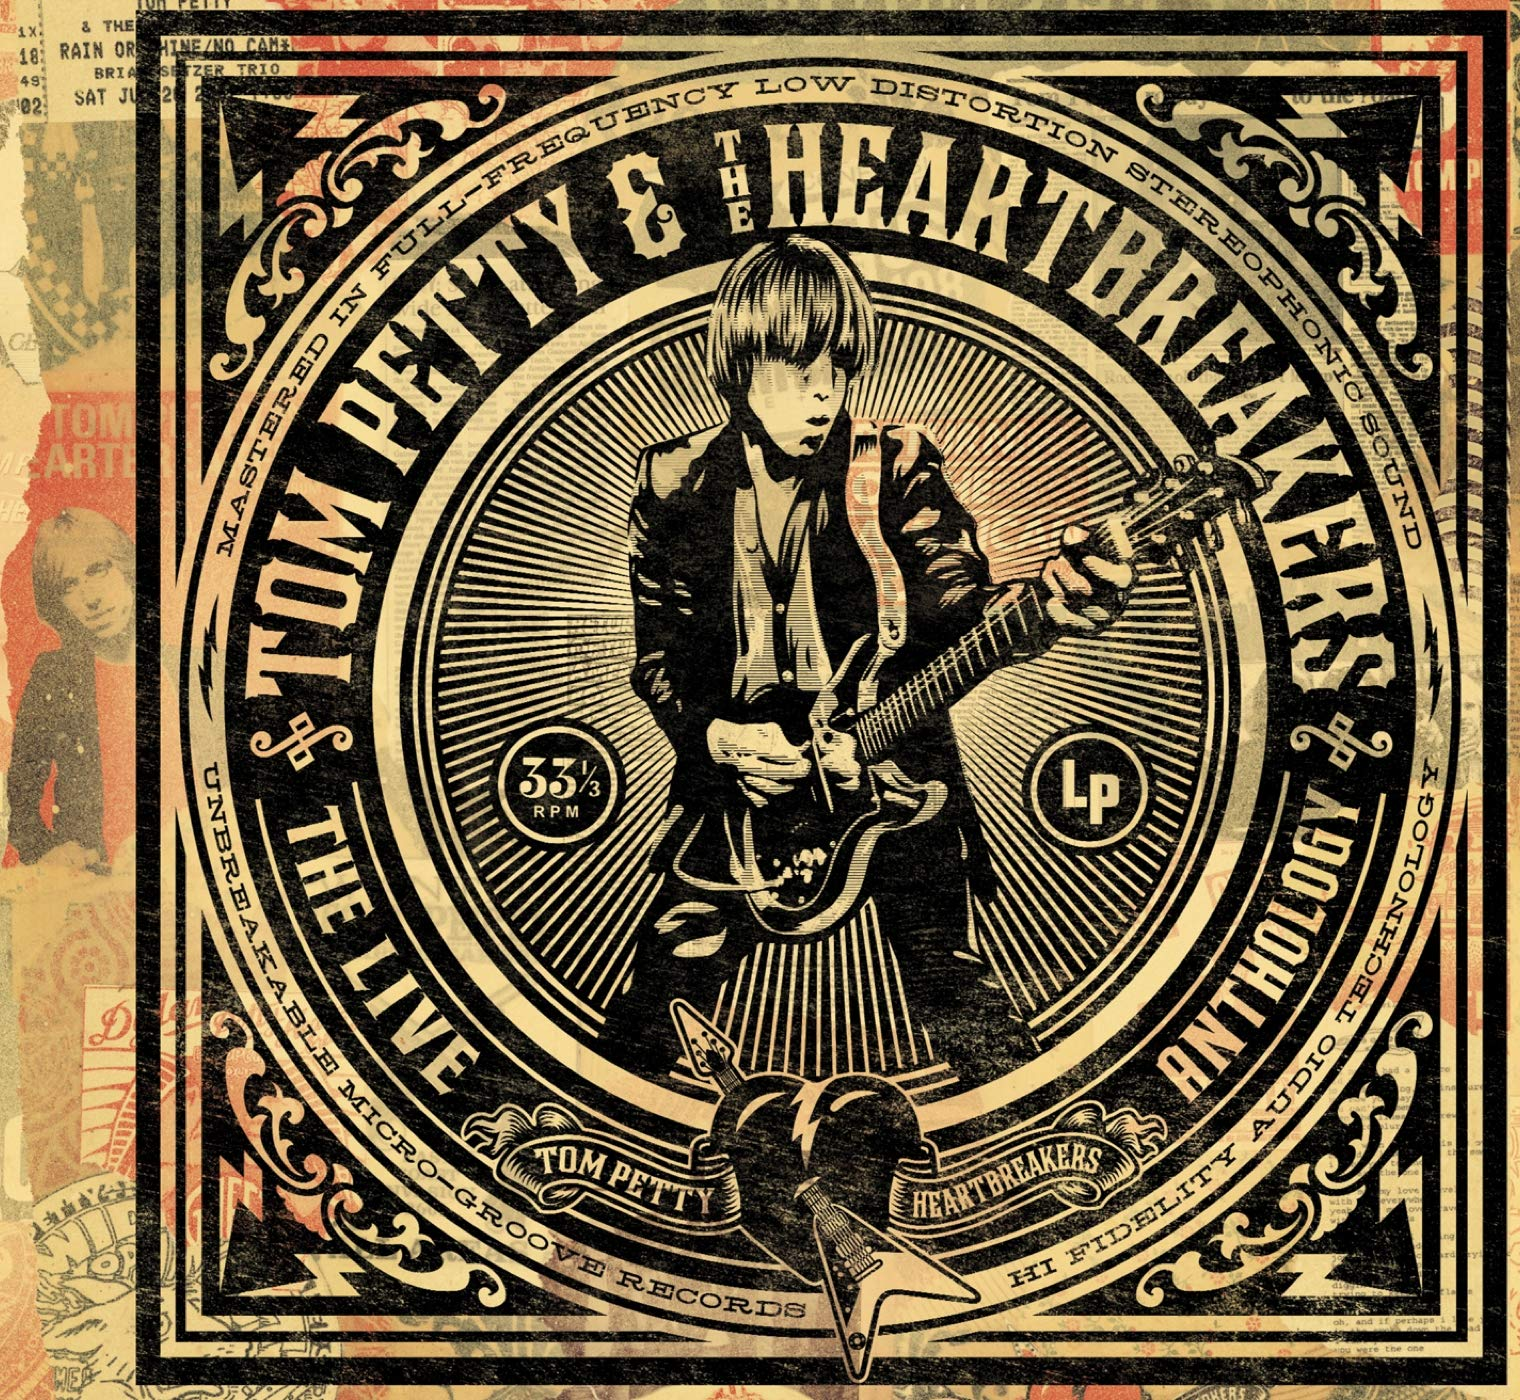 The Live Anthology (Vinyl) by Reprise